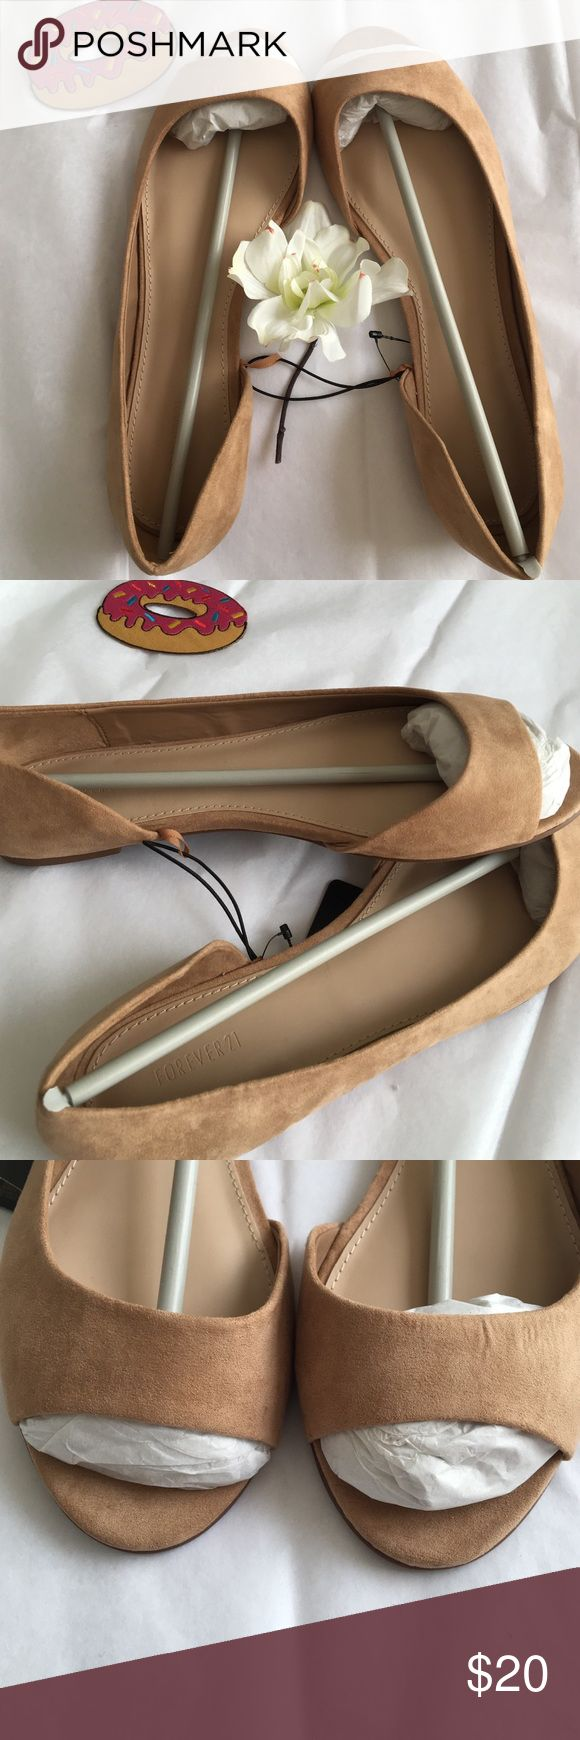 NWT  Suede Beige Open Toe Flats NWT Suede Peep-Toe flats in a beige/camel shade with an open side! So beyond adorable and perfect for any suede lover! They instantly dress up an outfit as well because of being suede!:)  ❤️NO TRADES NO LOW BALLERS❤️  all prices are negotiable, but please don't be rude & low ball :/ REASONABLE offers are always accepted :) Shoes Flats & Loafers